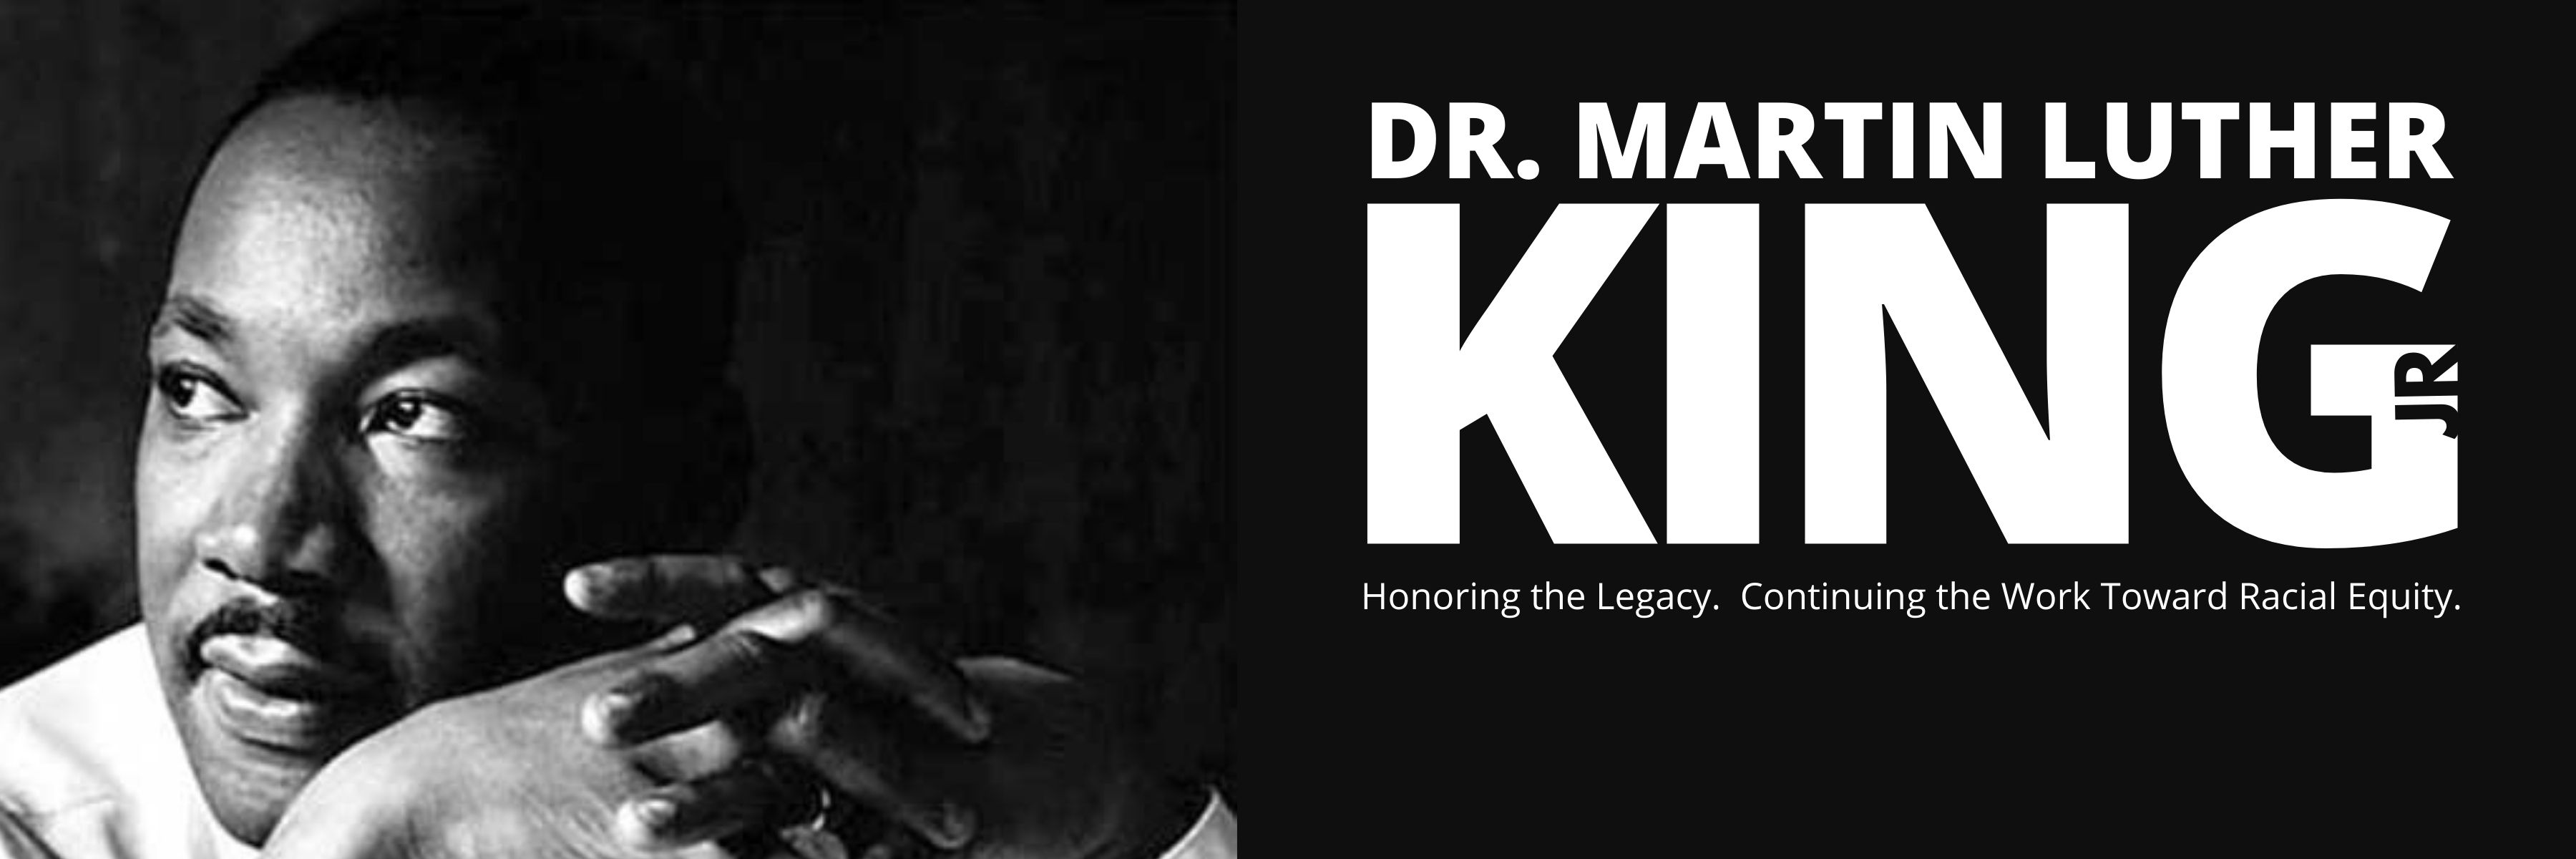 """<a href=""""https://www.barnerttemple.org/mlk2021#""""                                     target=""""_blank"""">                                                                 <span class=""""slider_title"""">                                     Learn & Continue the Work Toward Achieving Racial Equity                                </span>                                                                 </a>                                                                                                                                                                                       <span class=""""slider_description"""">Join Barnert as we honor the legacy of Dr. Martin Luther King, Jr. and continue the work toward achieving racial equity.  Click above to learn more.</span>"""